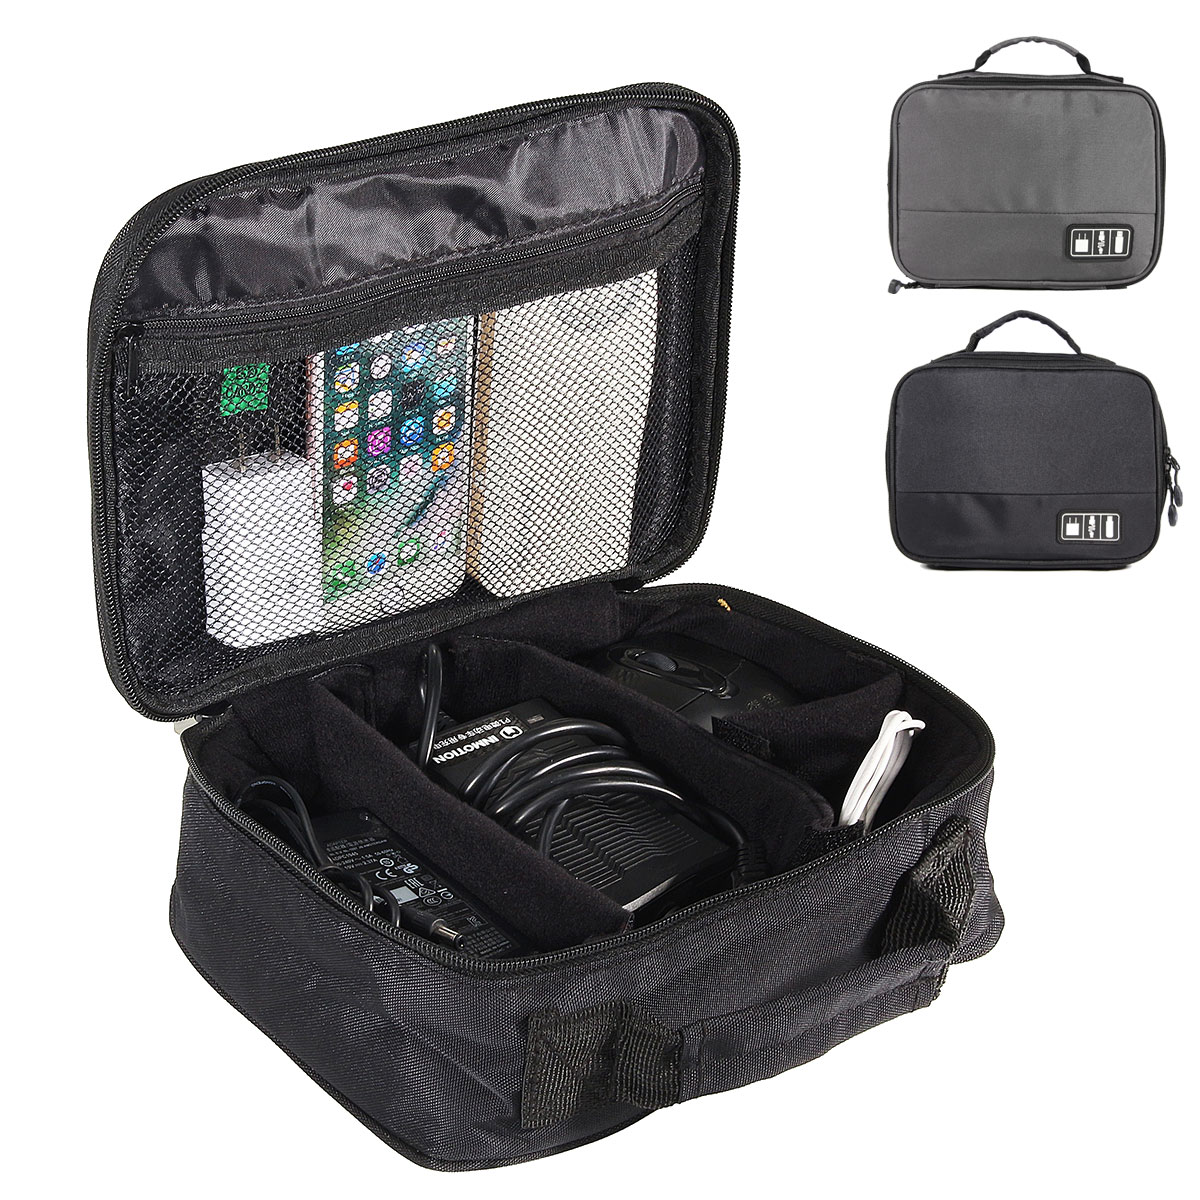 Buy IPRee™ Portable Travel Electronic Accessories Storage Bag Case USB Cable Charger Organizer Pouch